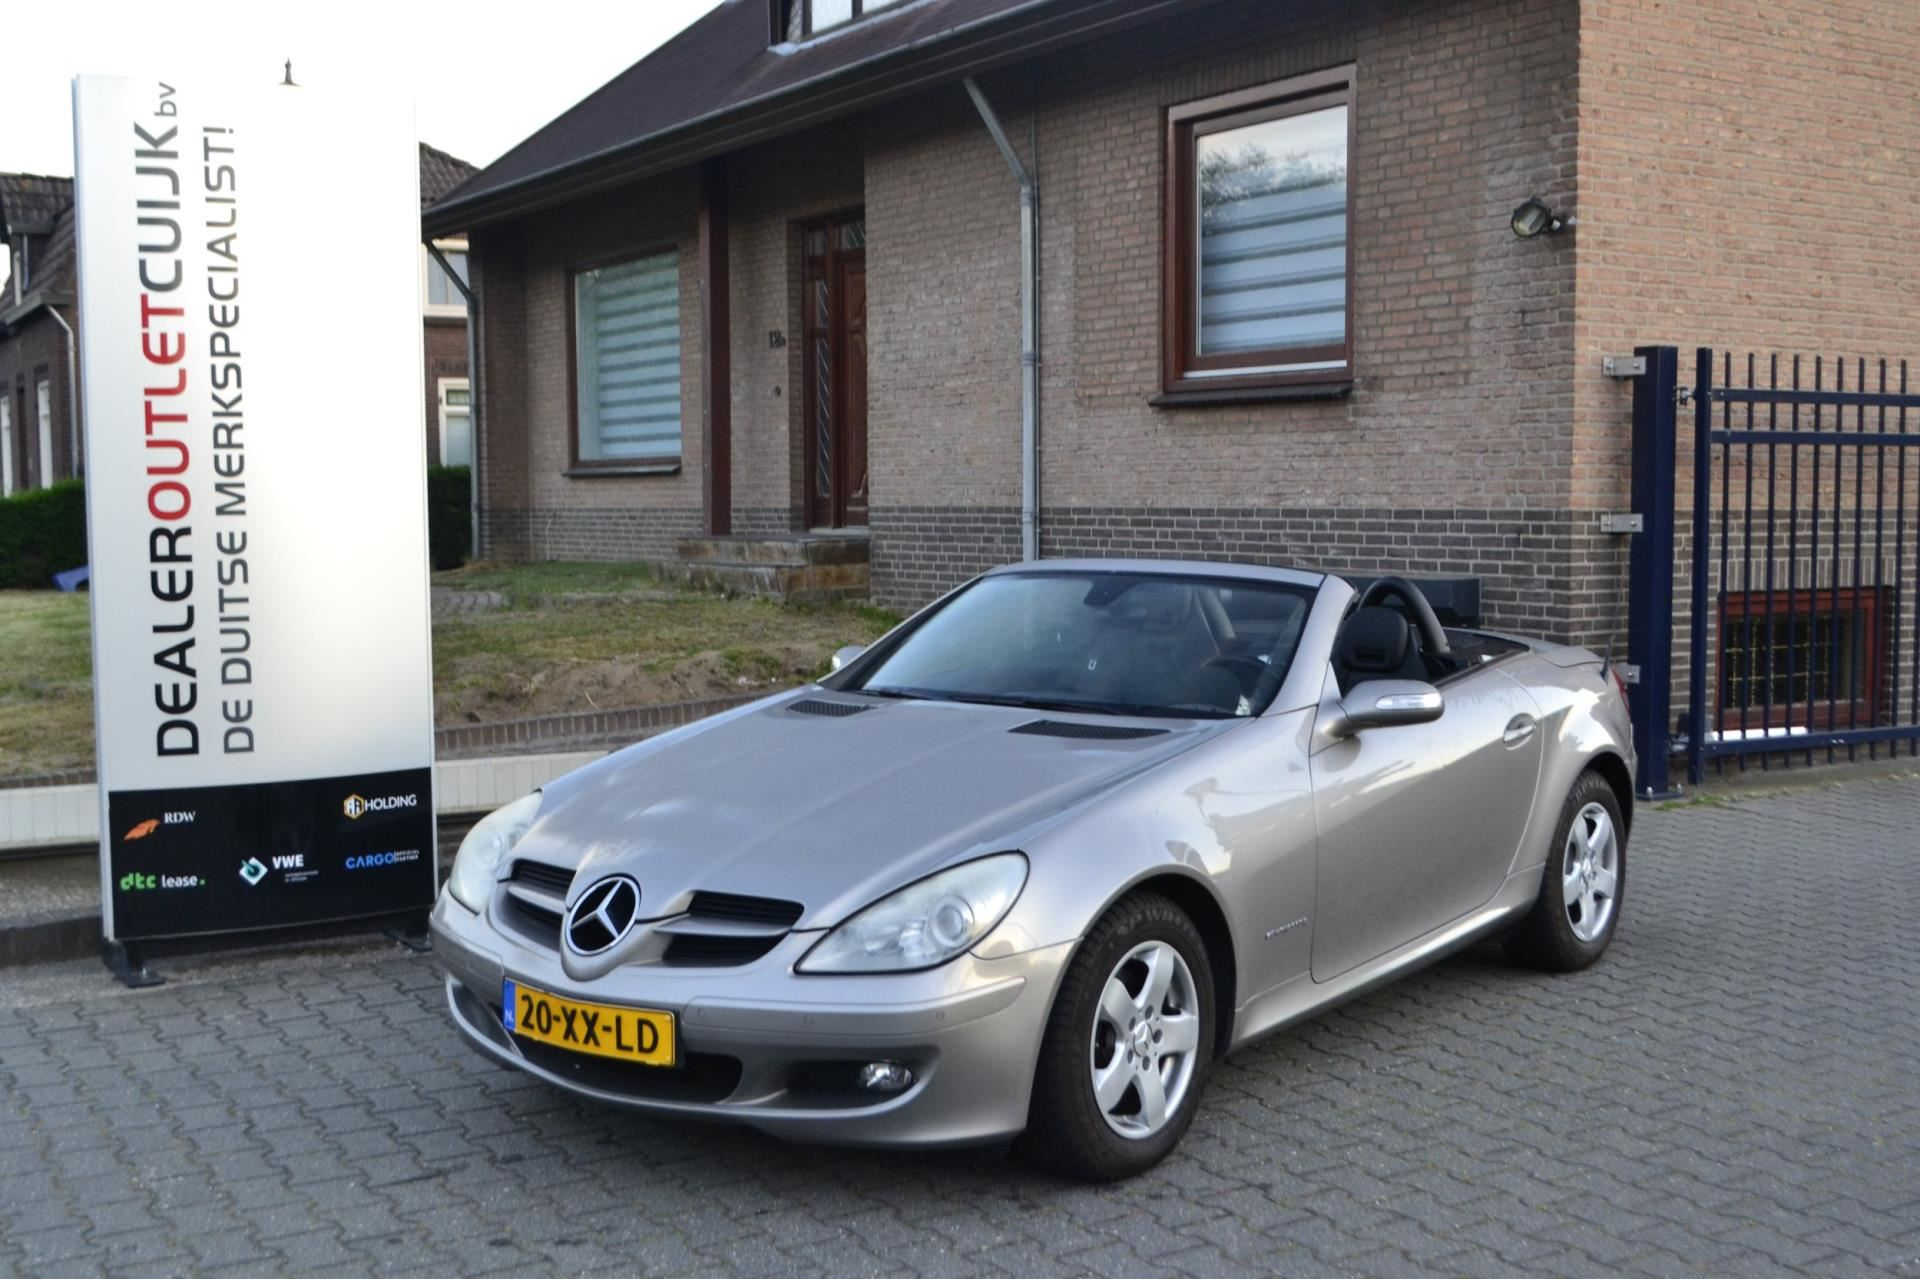 Mercedes-Benz SLK-klasse occasion - Dealer Outlet Cuijk b.v.